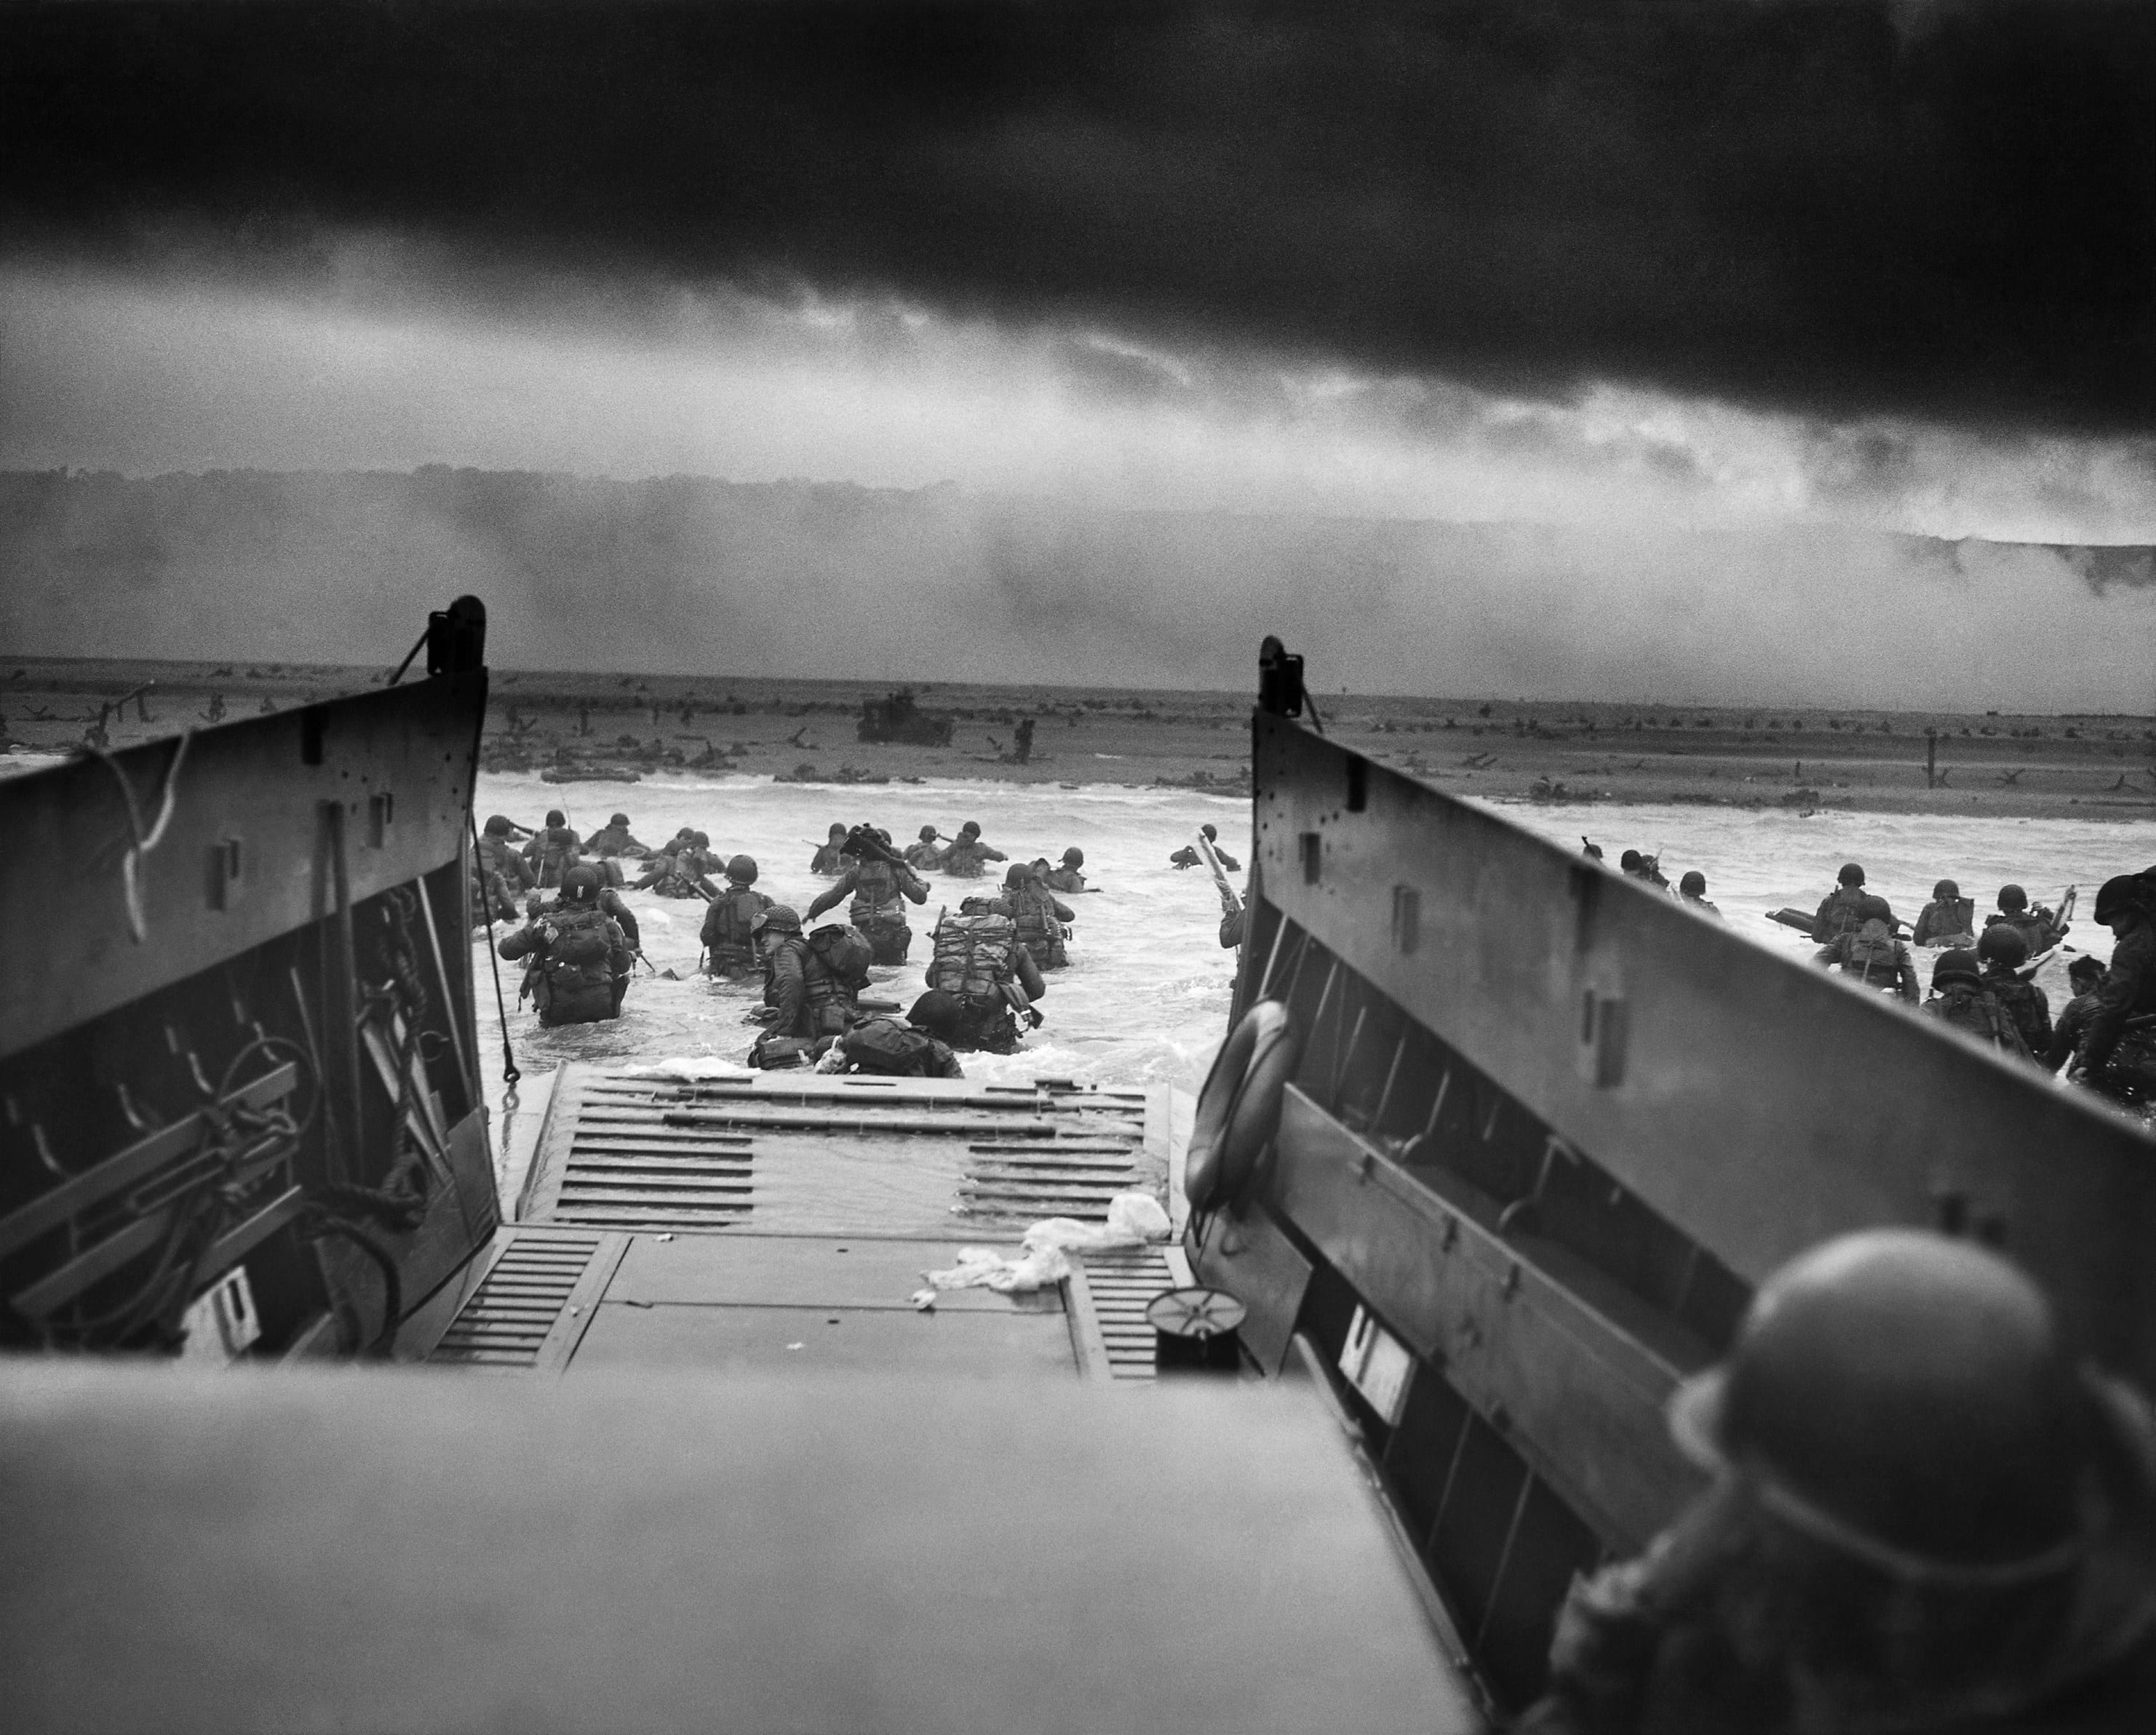 Image [June 6, 1944, an LCVP disembarks troops of Company E, 16th Infantry, 1st Infantry Division onto Omaha Beach in Normandy, France.]